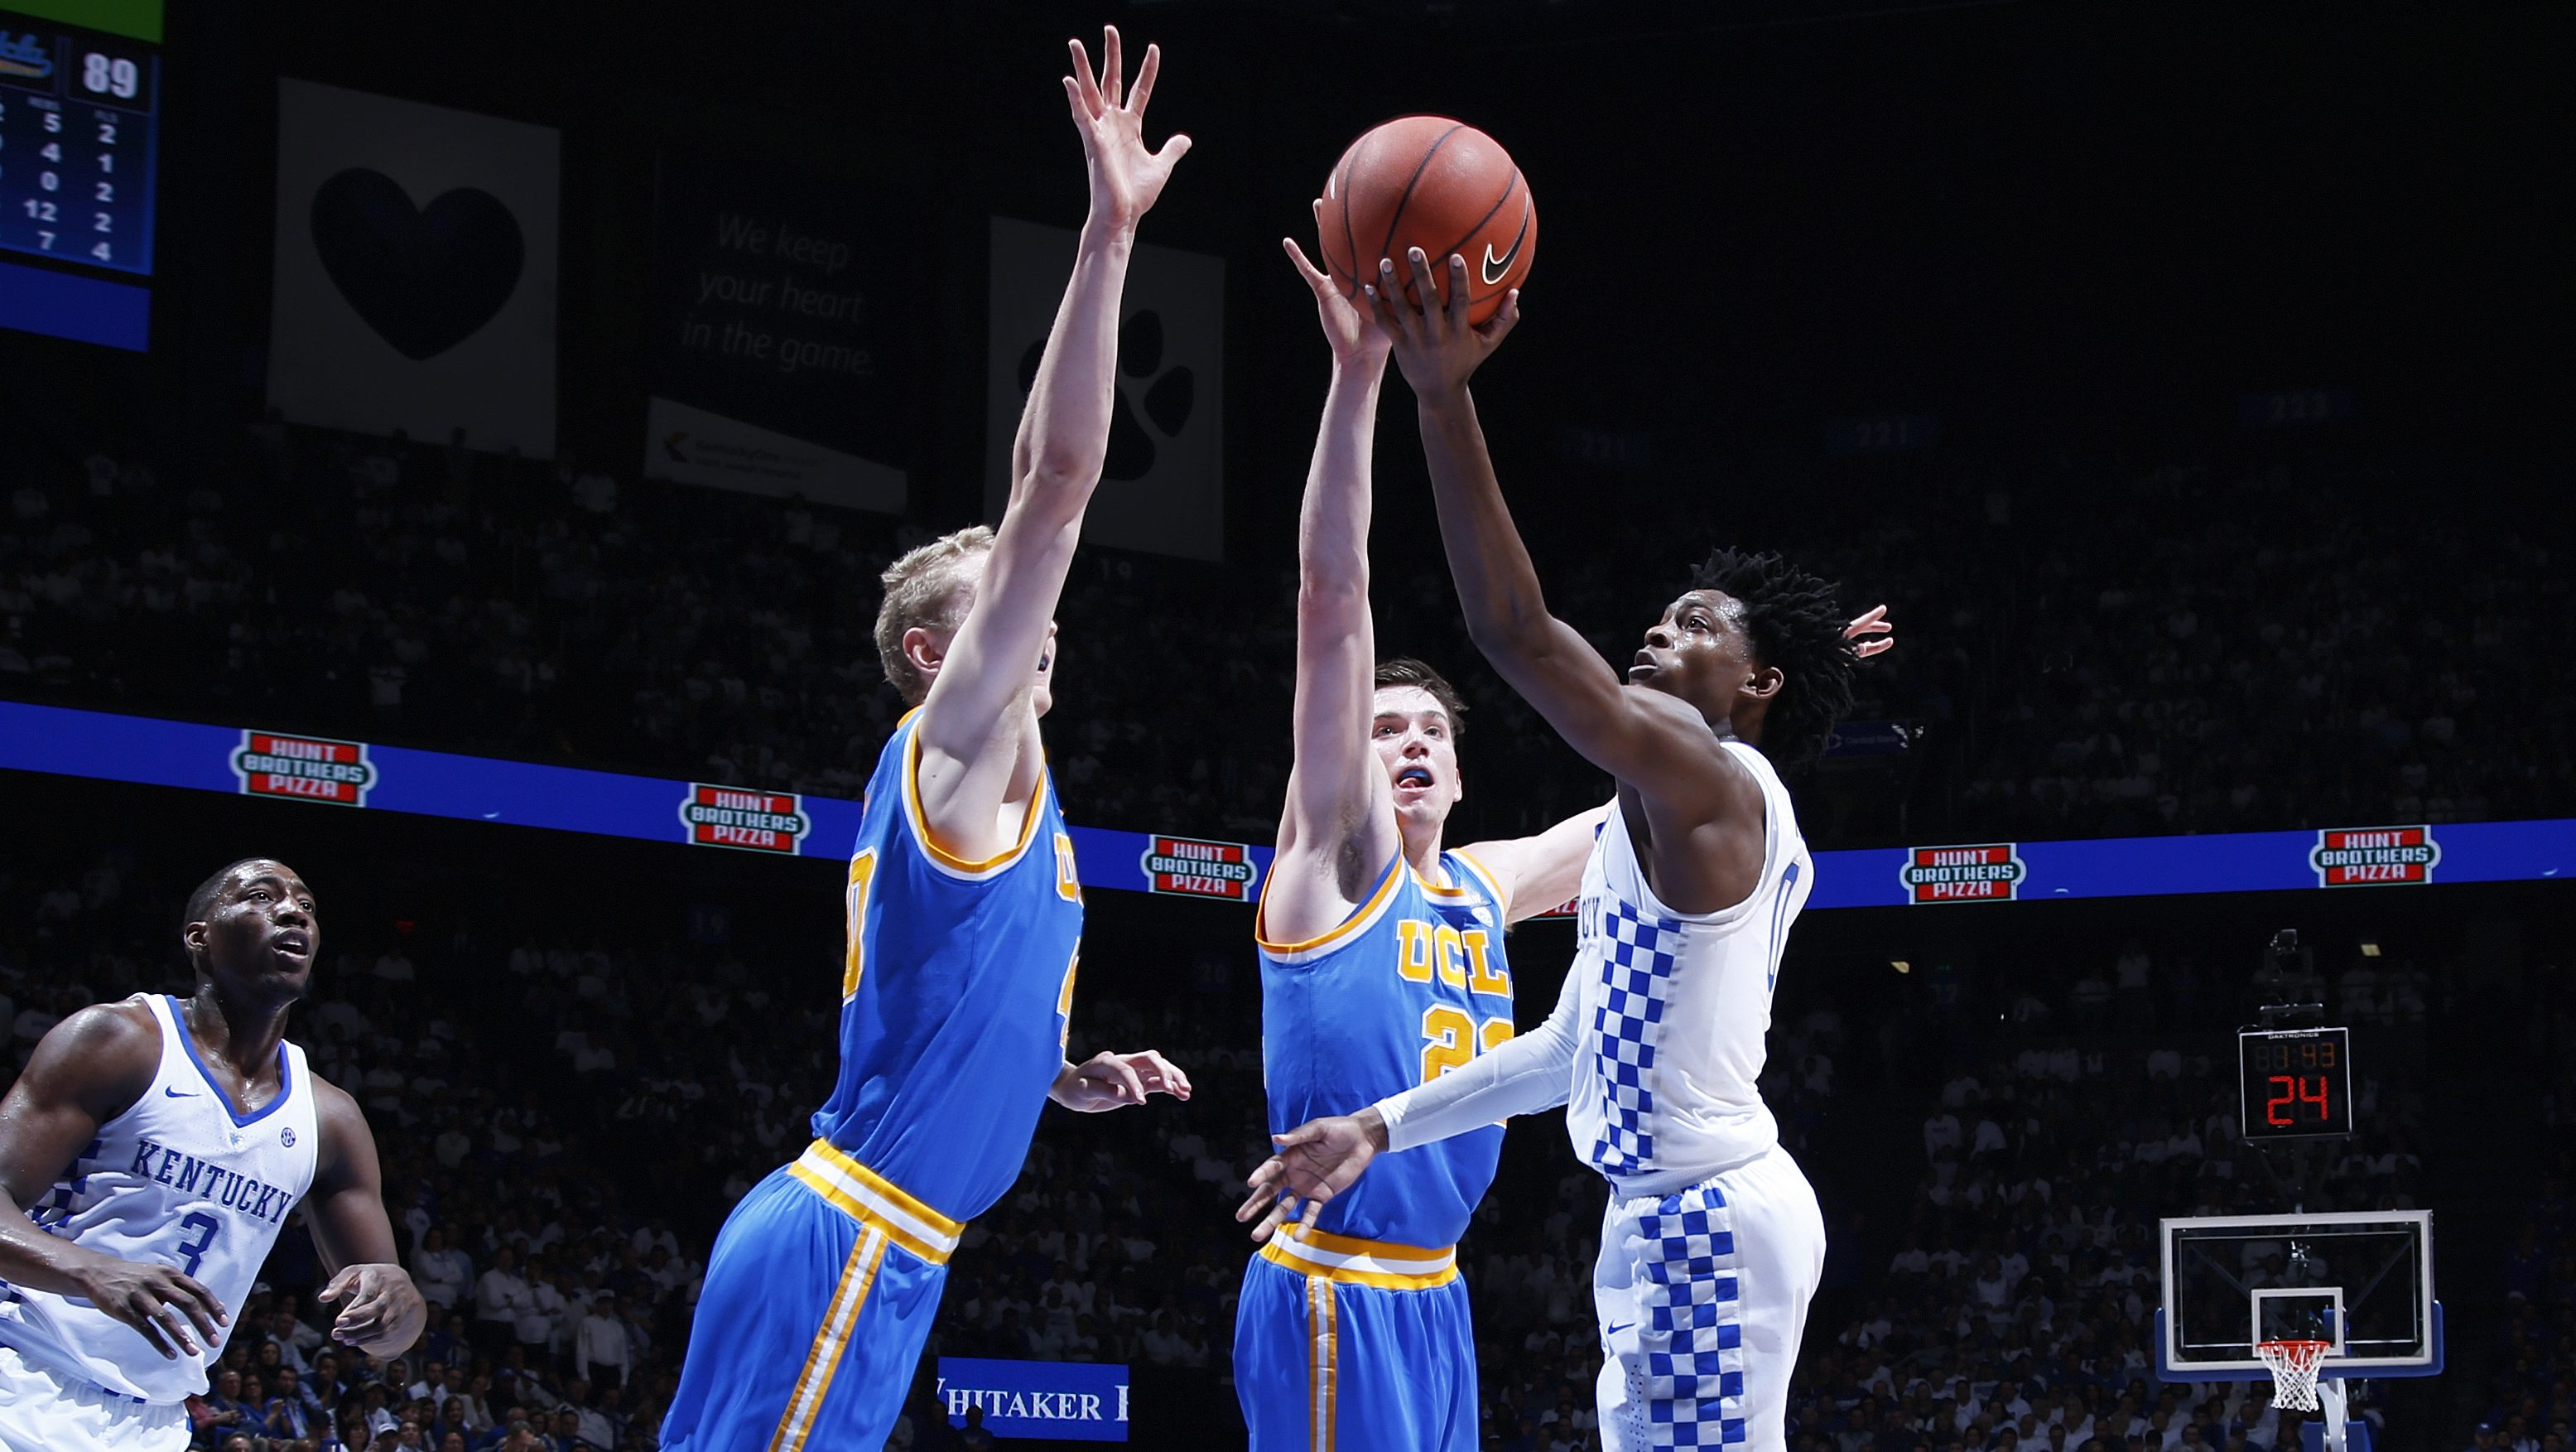 LEXINGTON, KY - DECEMBER 03: Thomas Welsh #40 and TJ Leaf #22 of the UCLA Bruins defend against De'Aaron Fox #0 of the Kentucky Wildcats in the second half of the game at Rupp Arena on December 3, 2016 in Lexington, Kentucky. UCLA defeated Kentucky 97-92. (Photo by Joe Robbins/Getty Images)